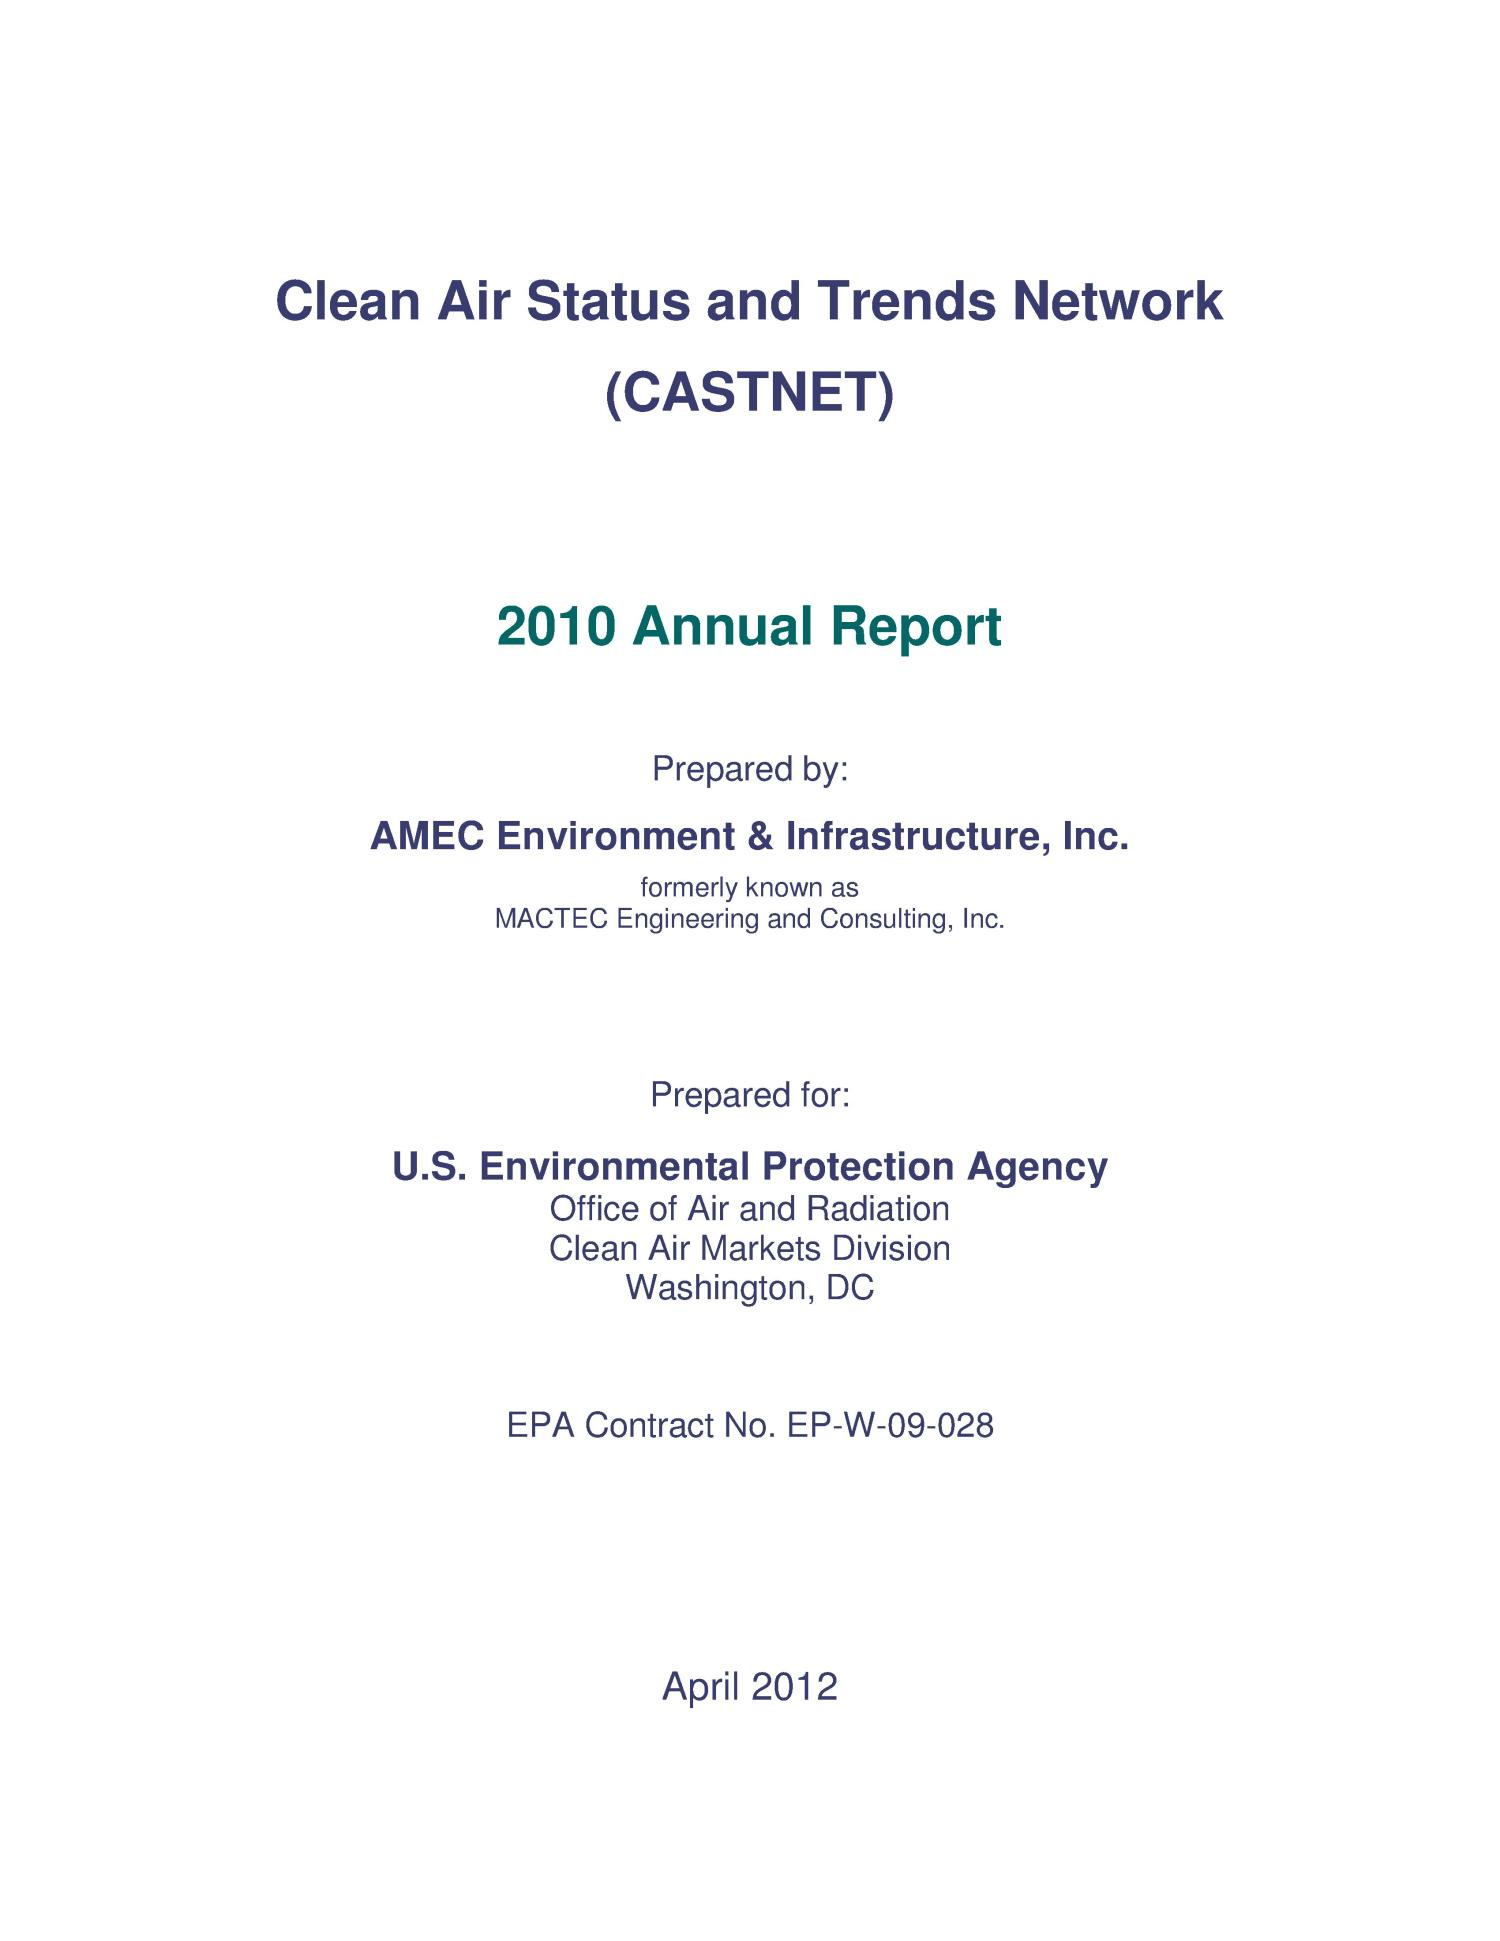 Clean Air Status and Trends Network Annual Report: 2010                                                                                                      [Sequence #]: 2 of 97